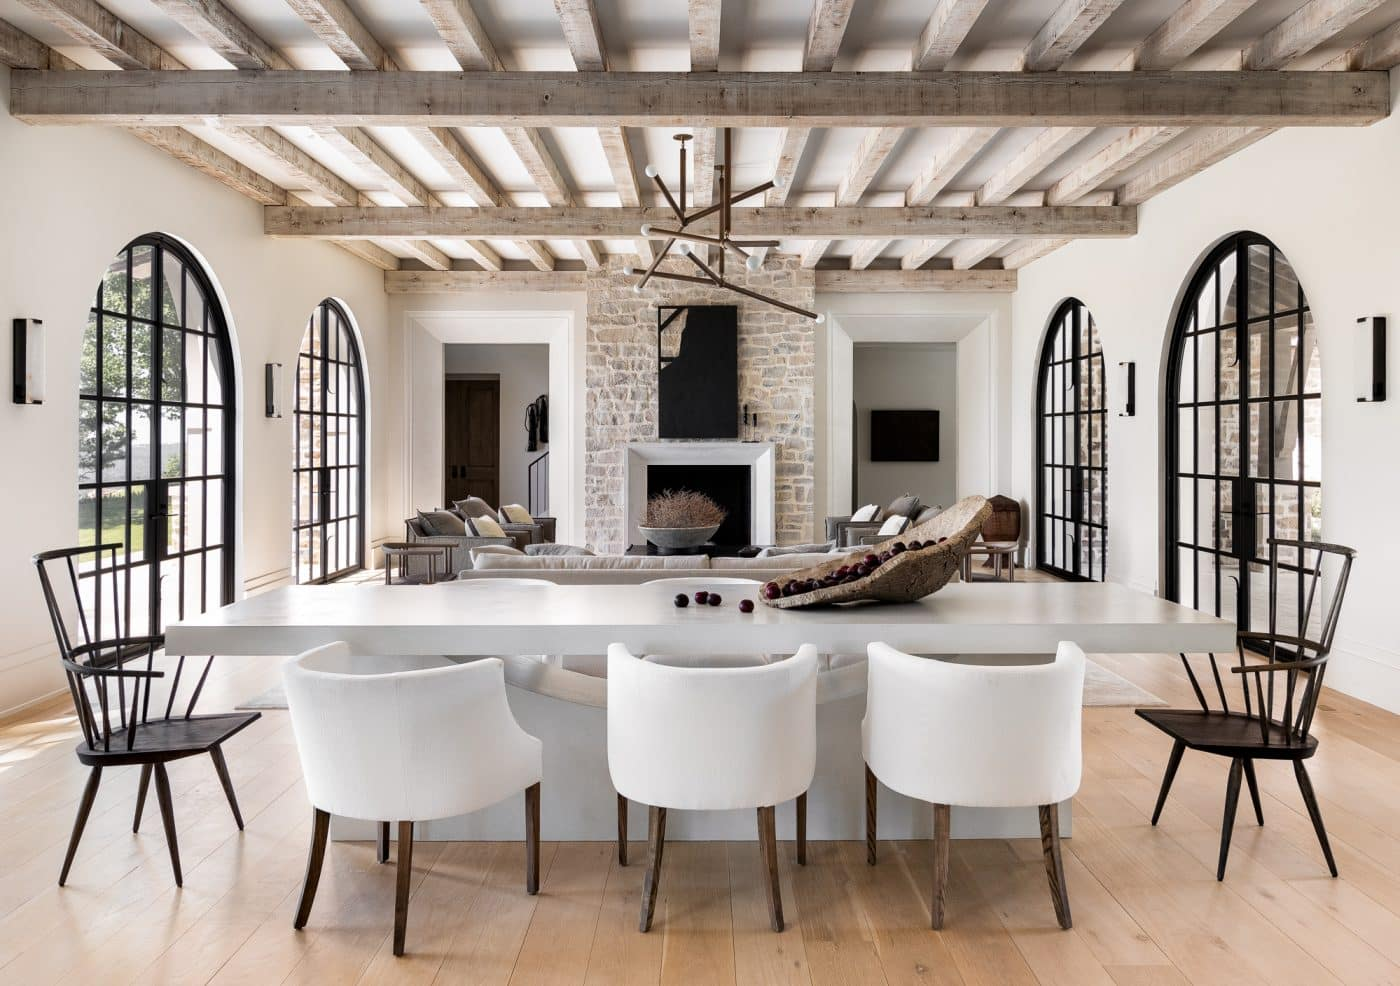 DIning area designed by Sean Anderson